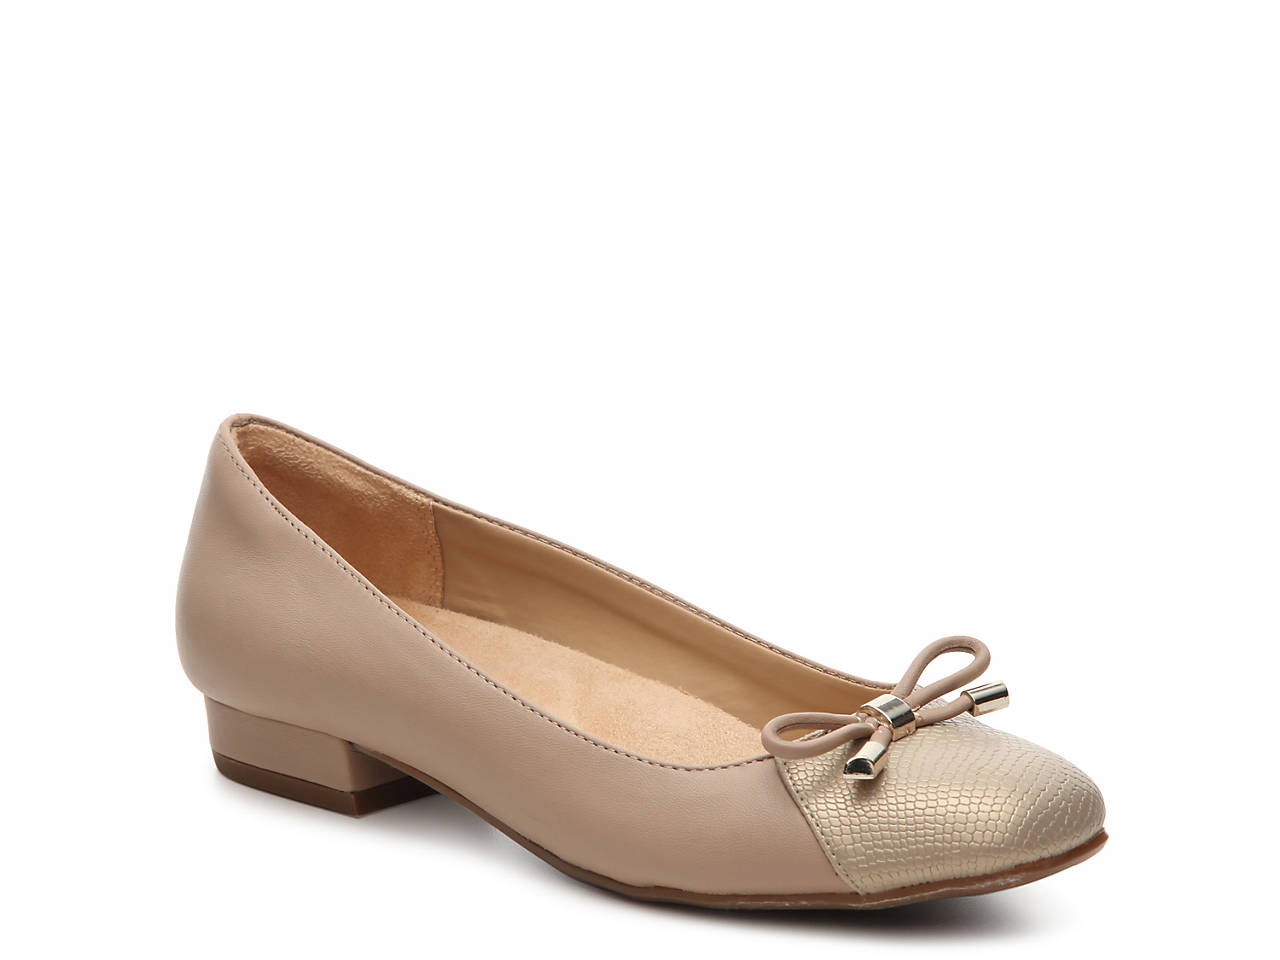 fded2aba50c9 Naturalizer Gertie Flat Women s Shoes